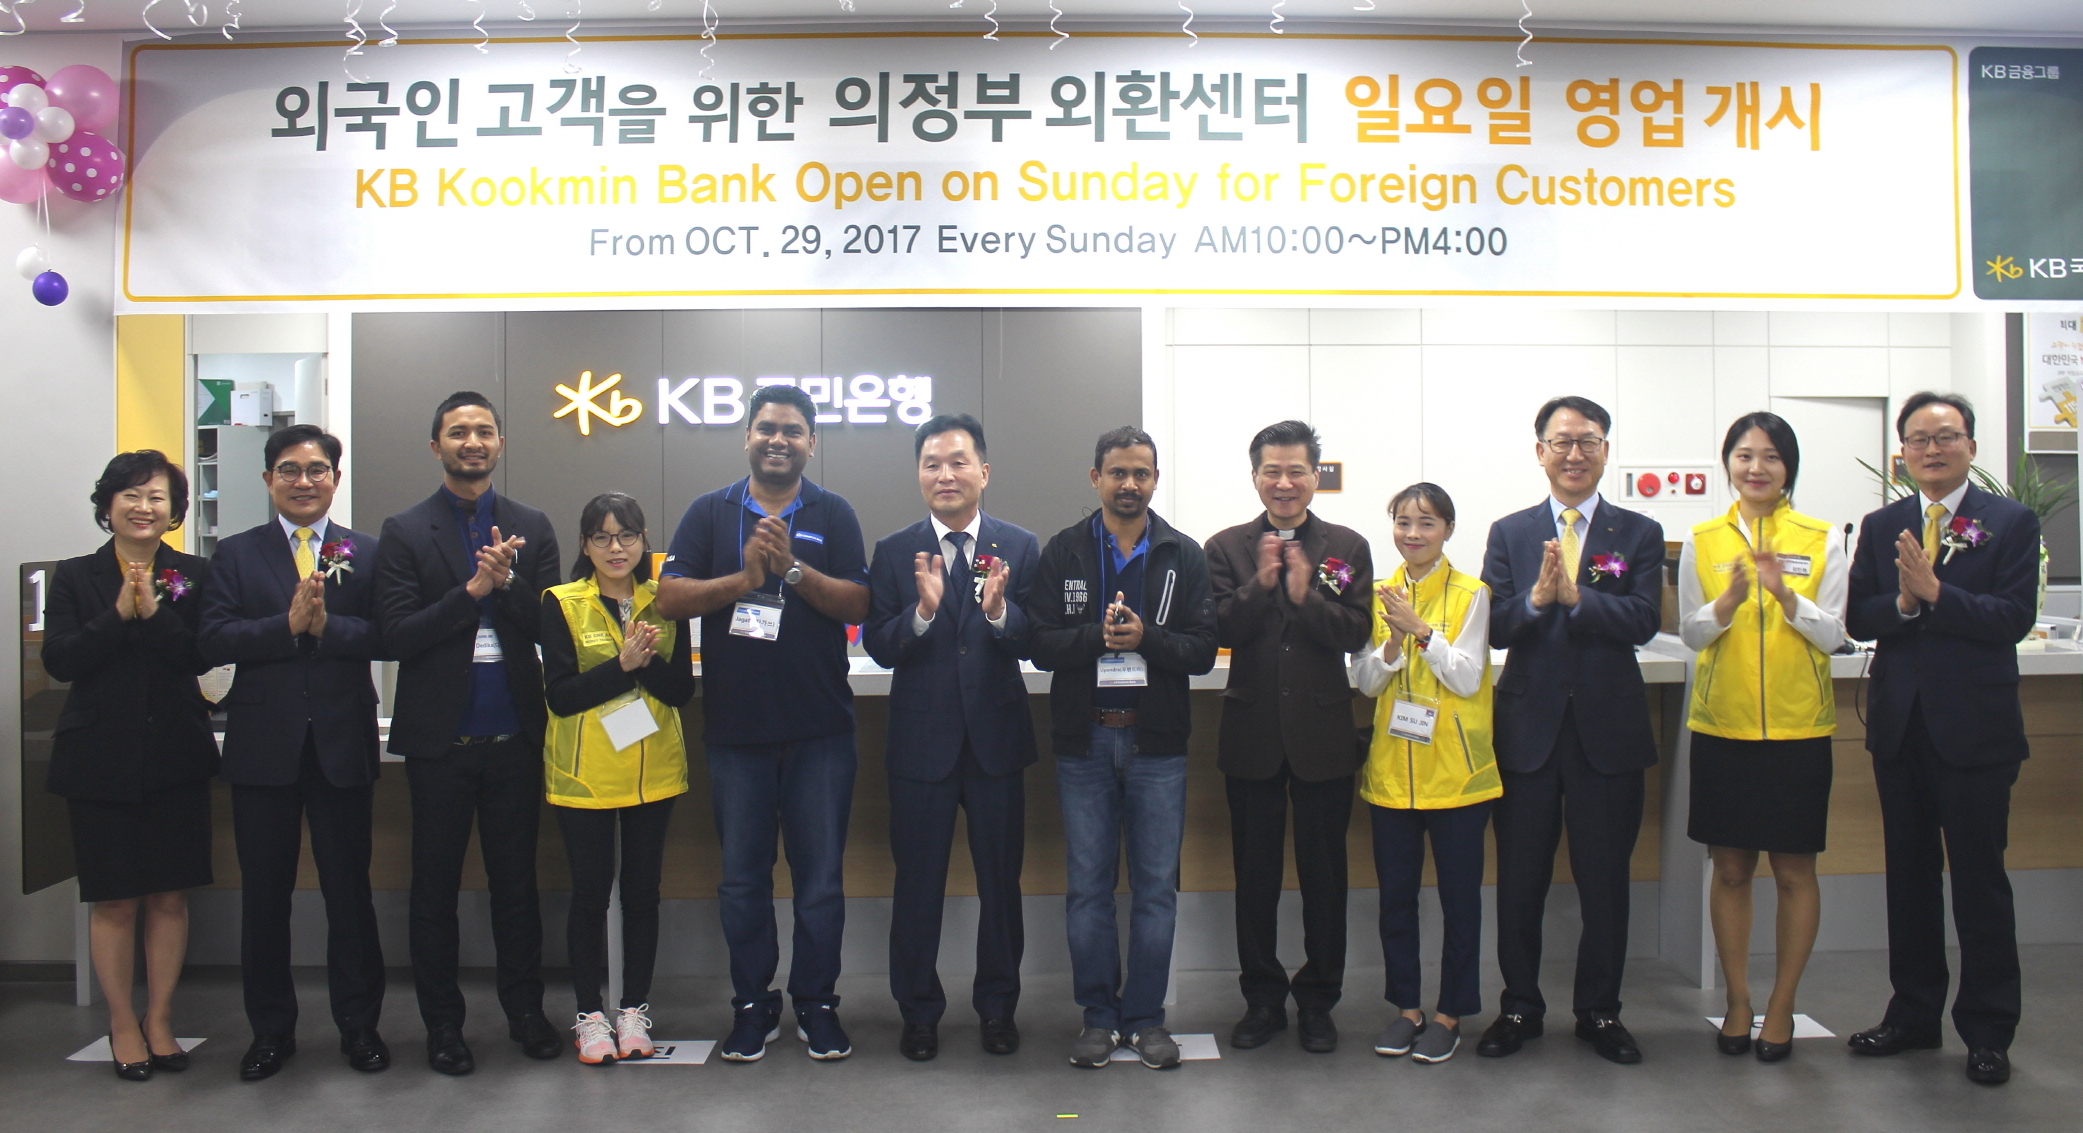 KB Kookmin Bank's opening ceremony of the Uijeongbu Foreign Exchange Service Center